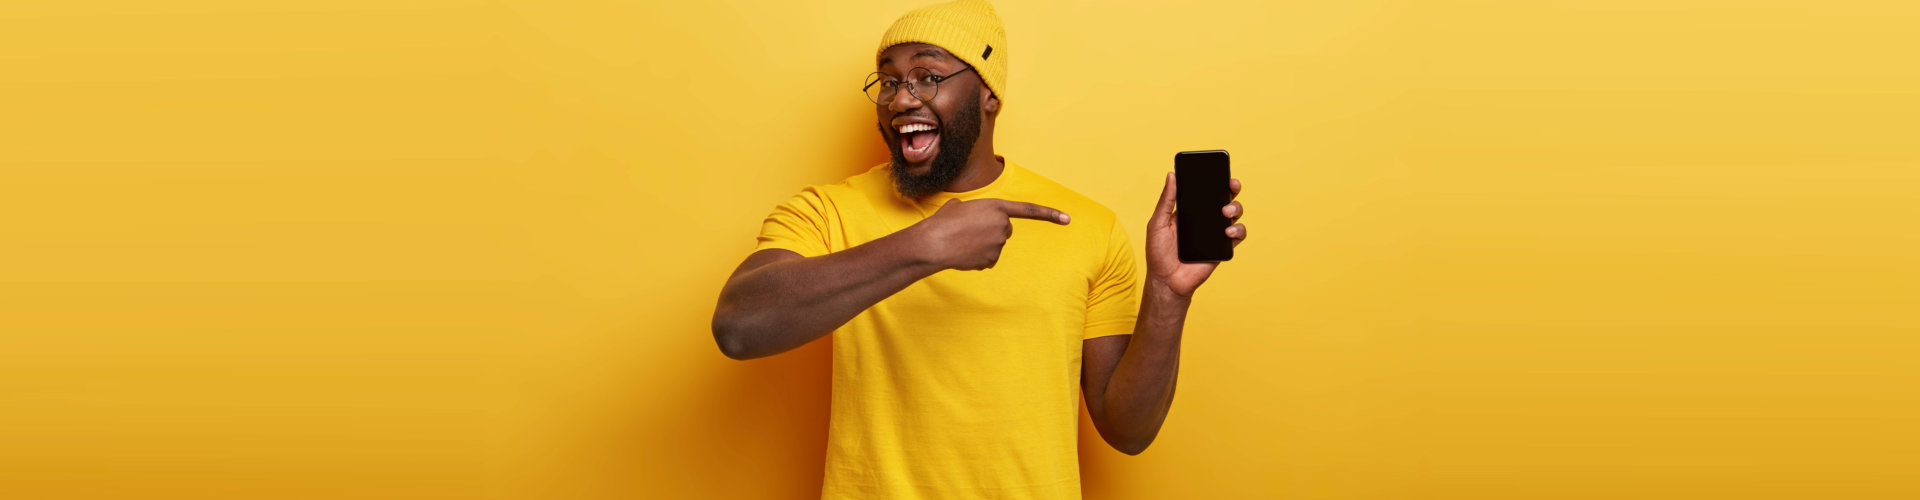 man posing for the camera with his phone